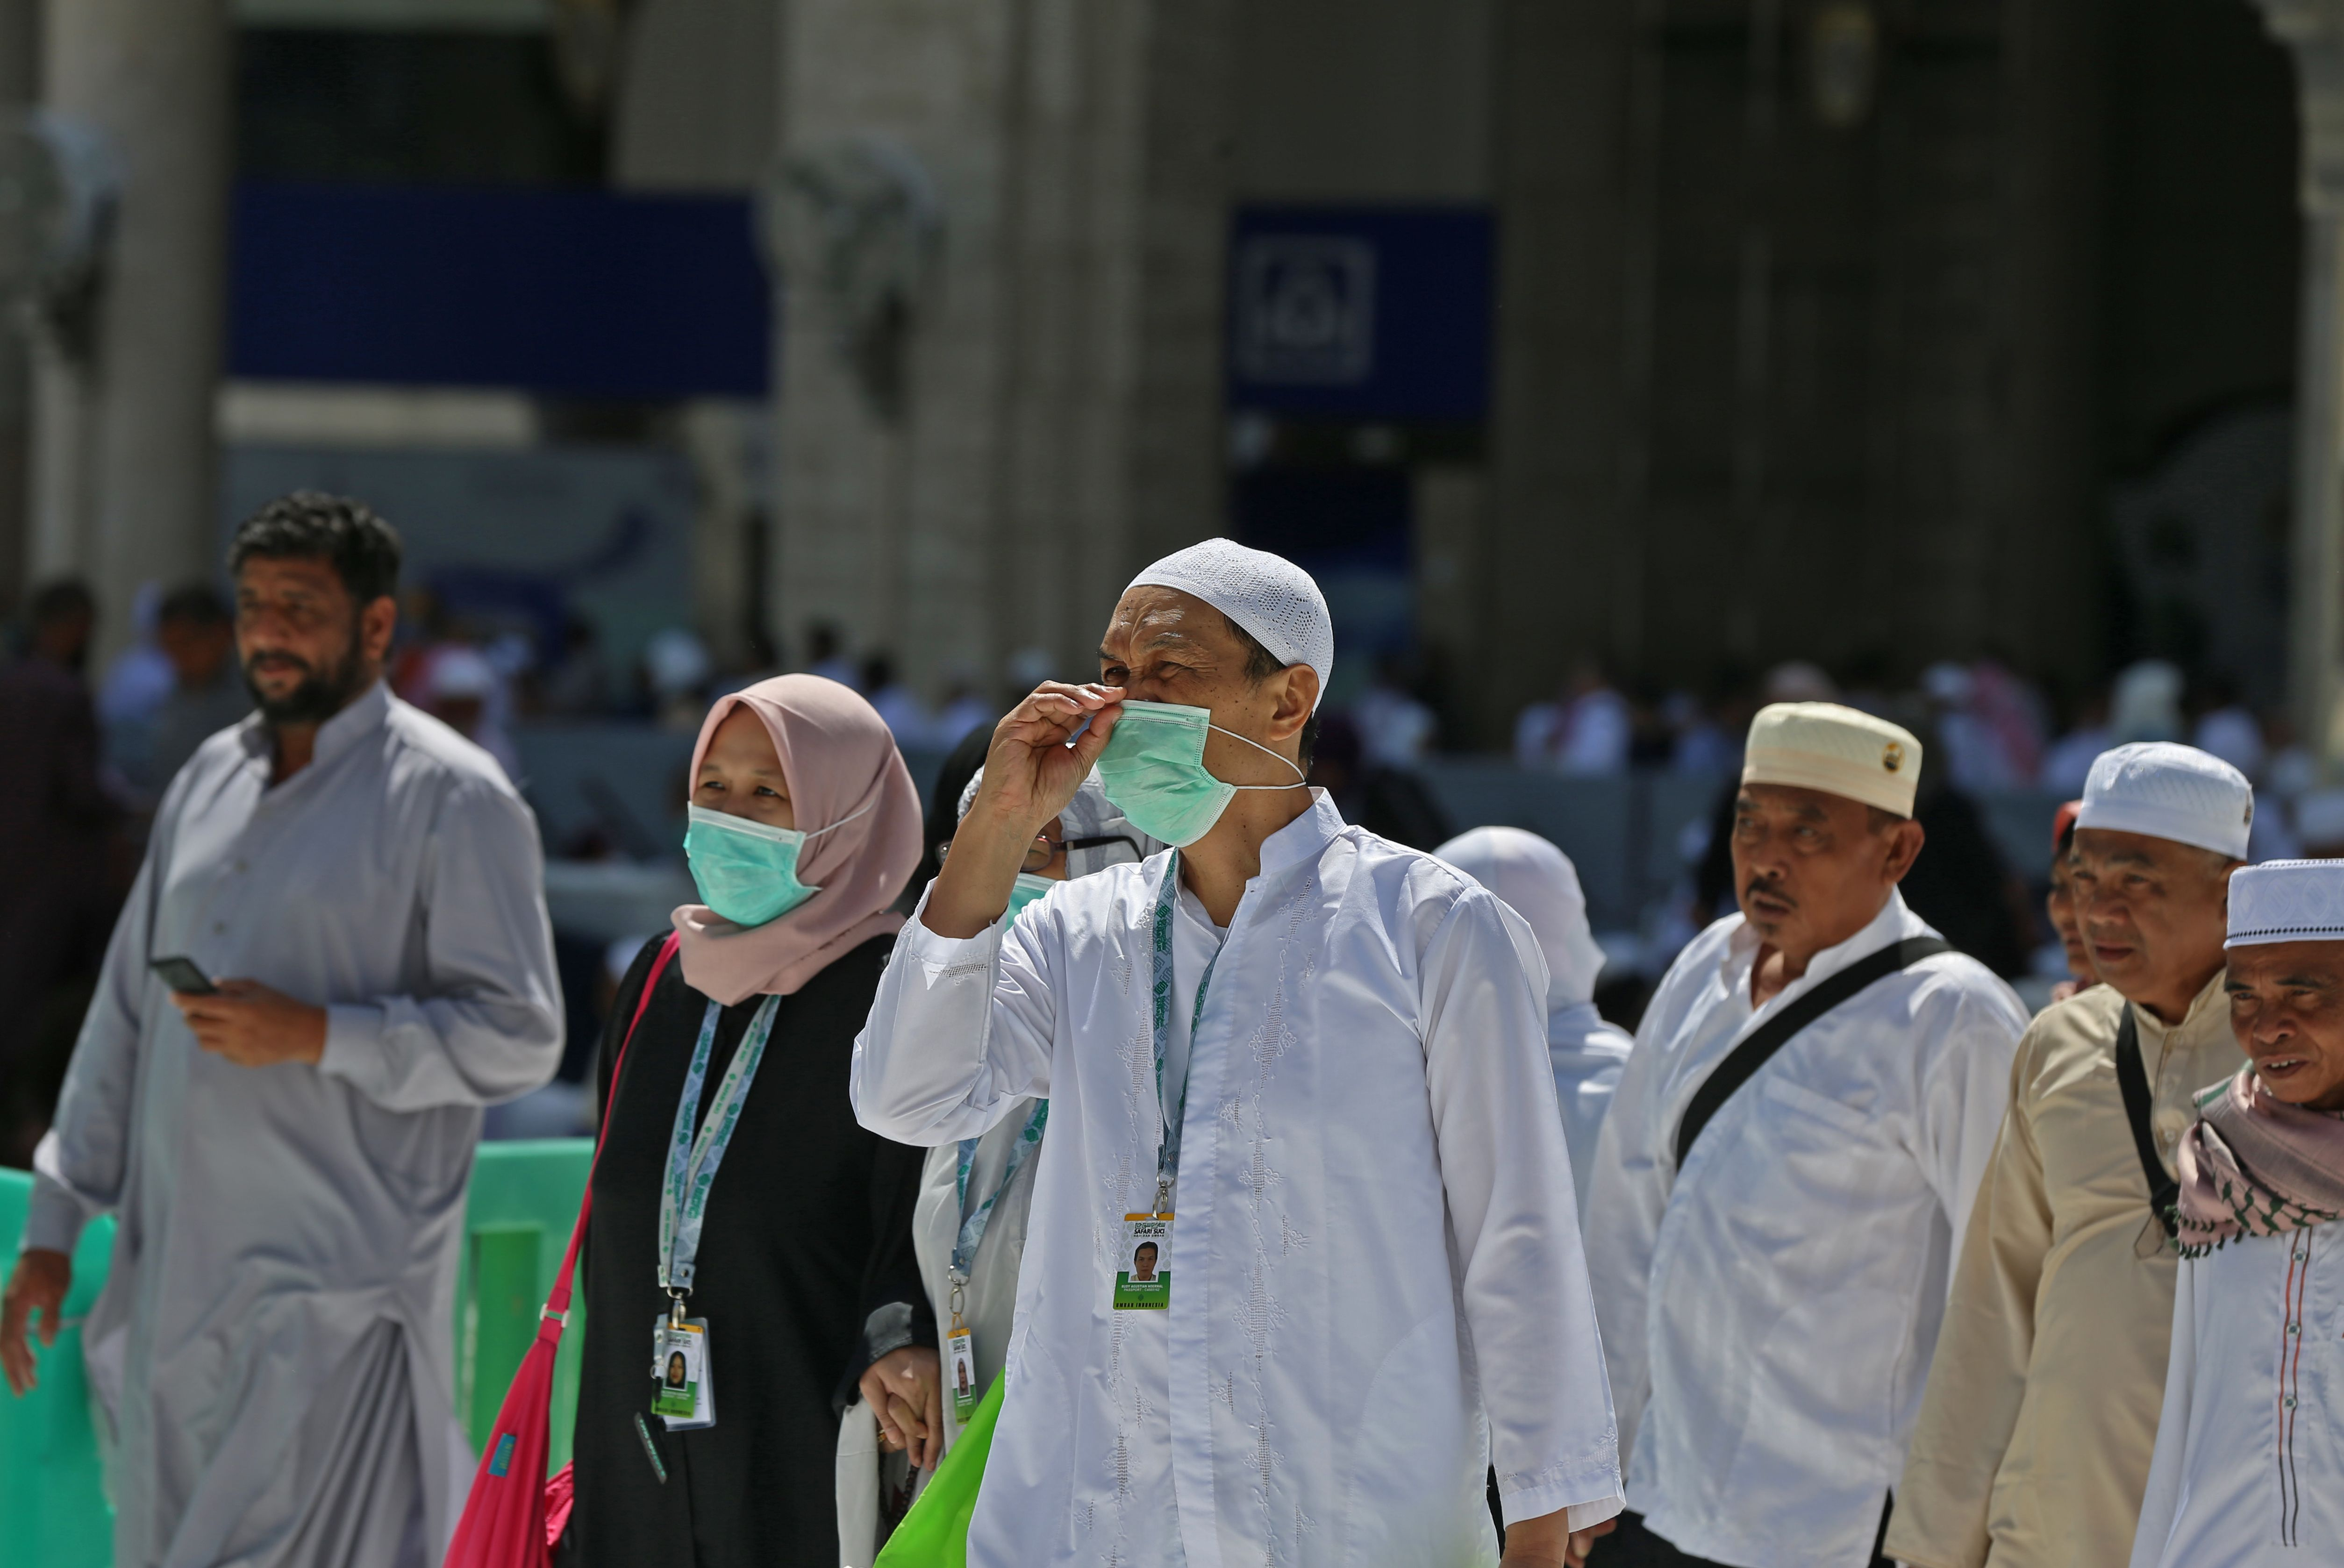 Muslim pilgrims wear masks at the Grand Mosque in Saudi Arabia's holy city of Mecca (Photo by ABDULGANI BASHEER/AFP via Getty Images)